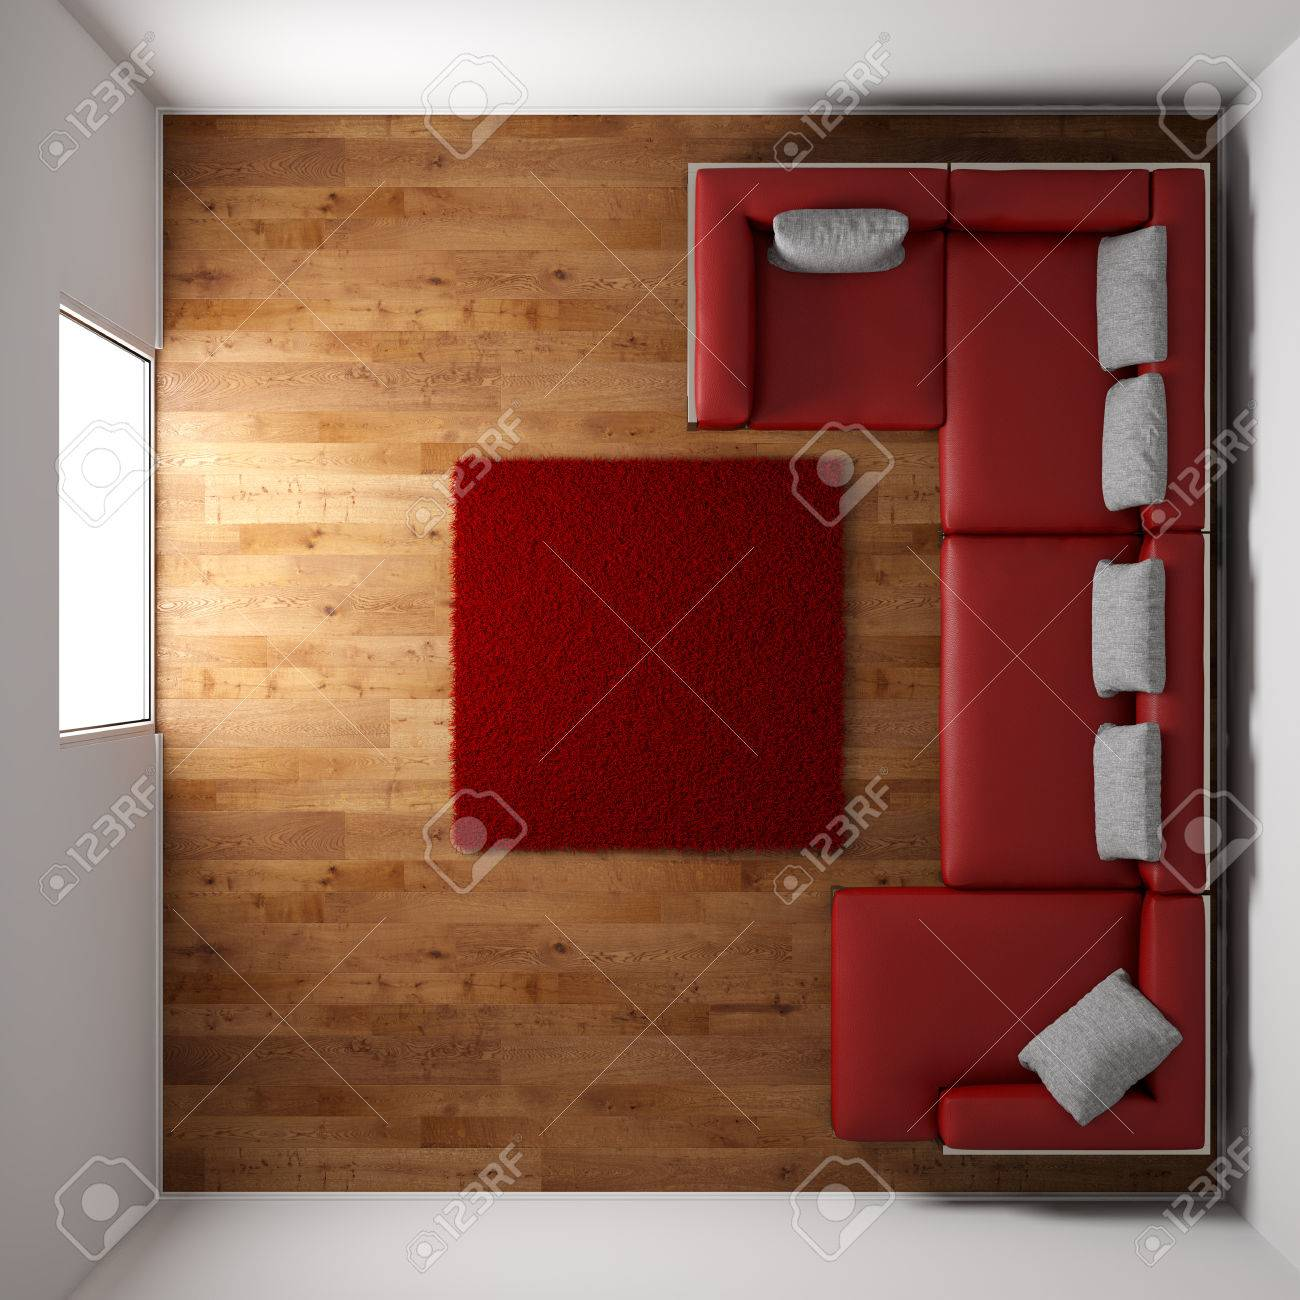 Wooden floor texture with red leather couch and pillow top view - 30533037